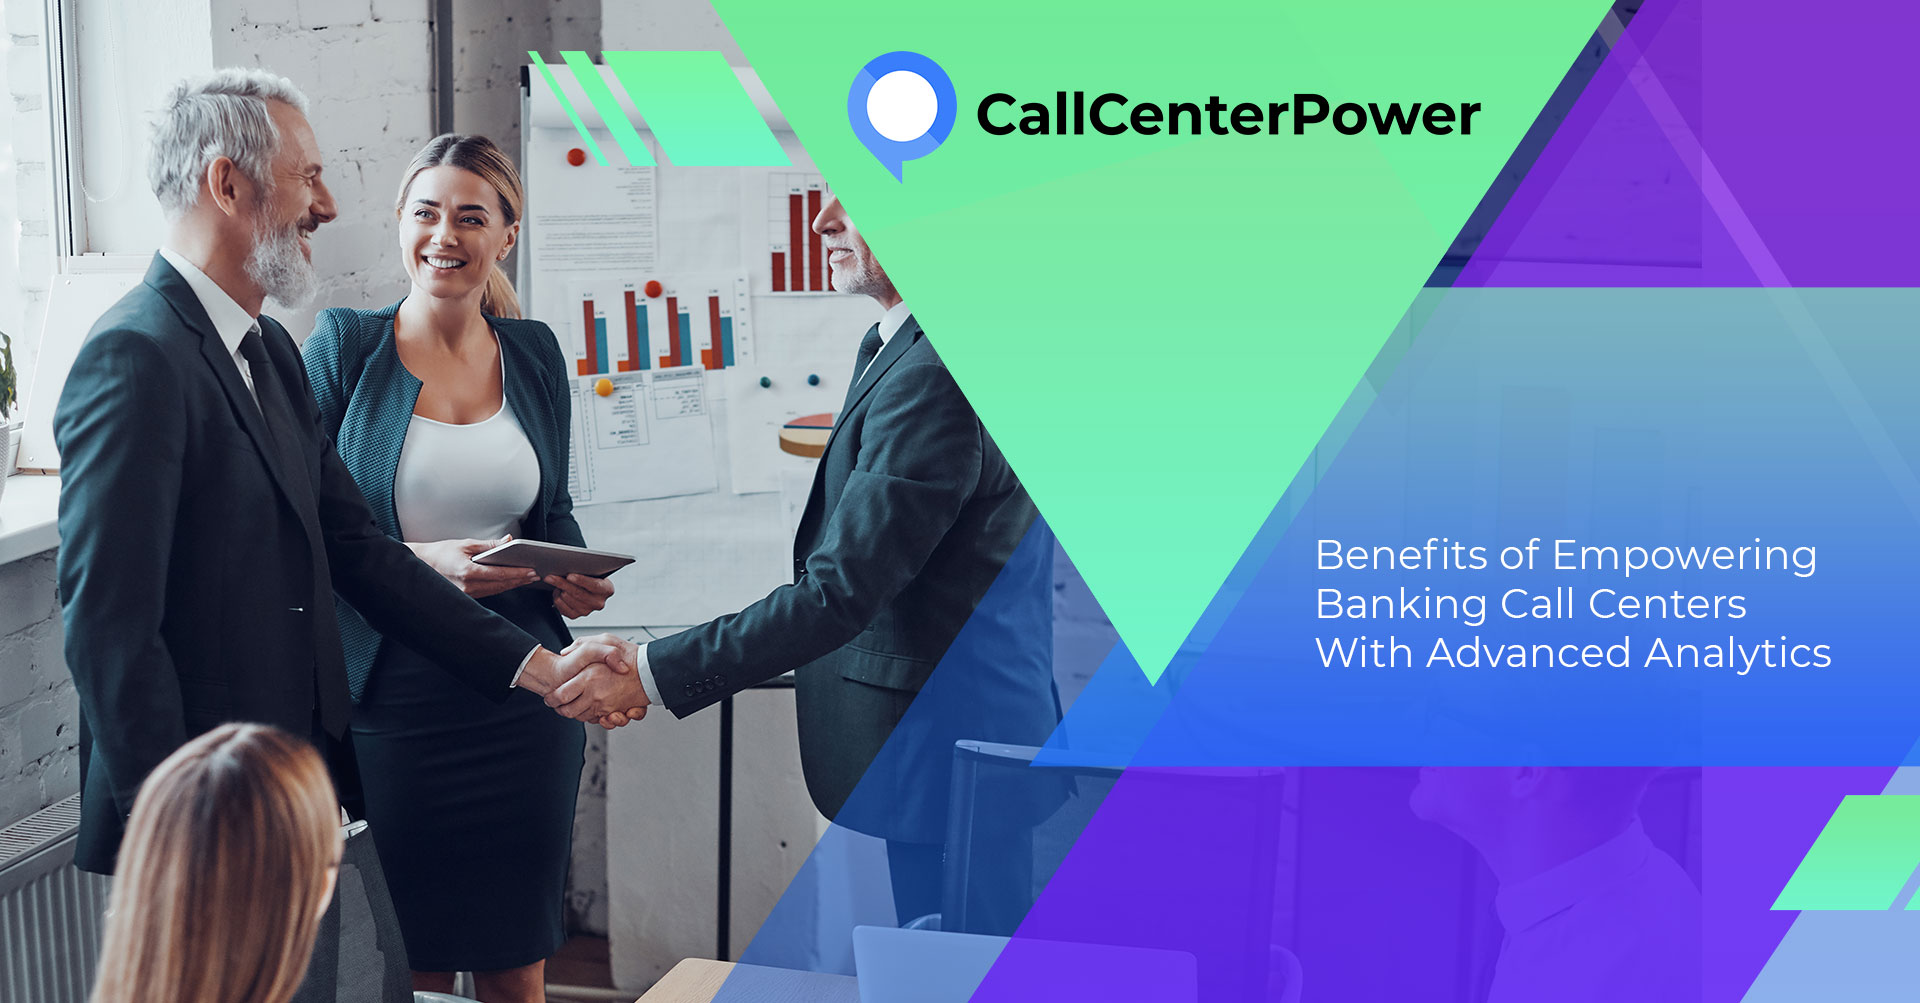 Benefits of Empowering Banking Call Centers With Advanced Analytics